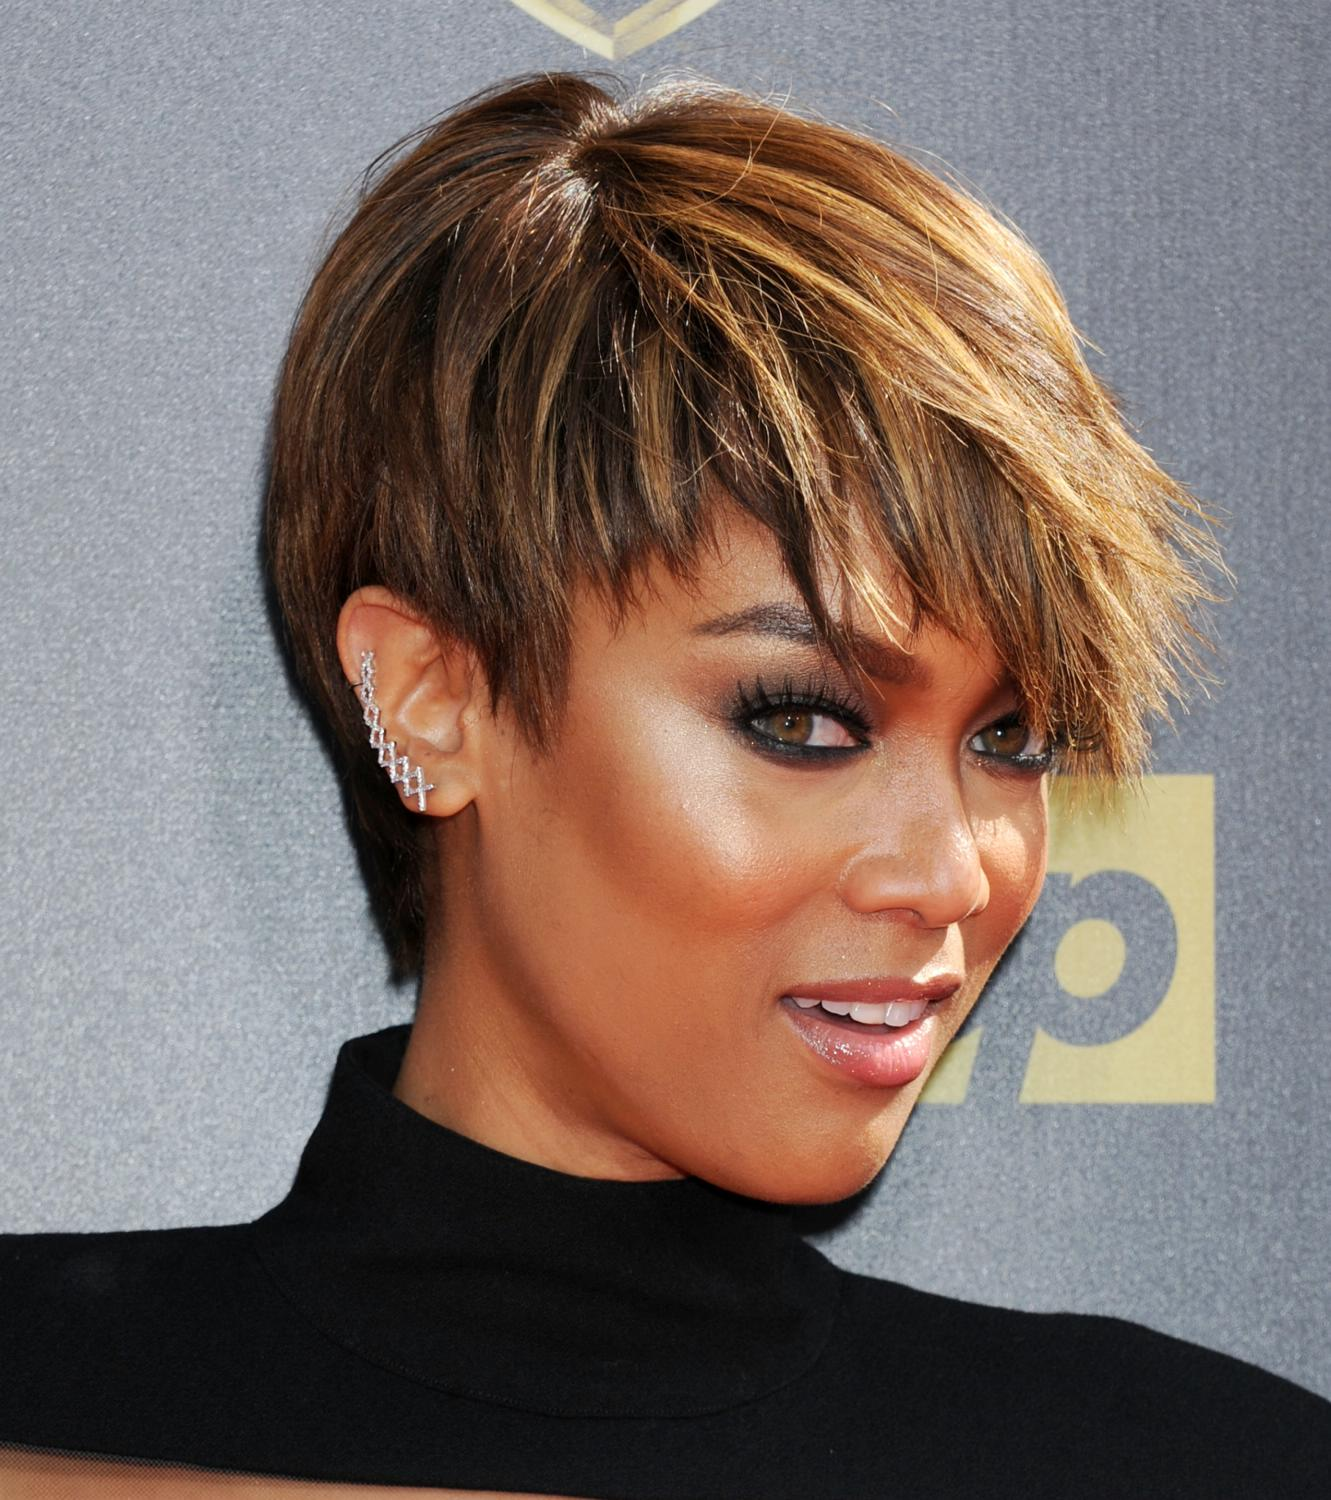 Tyra Banks Awards: Tyra Banks At Daytime Emmy Awards